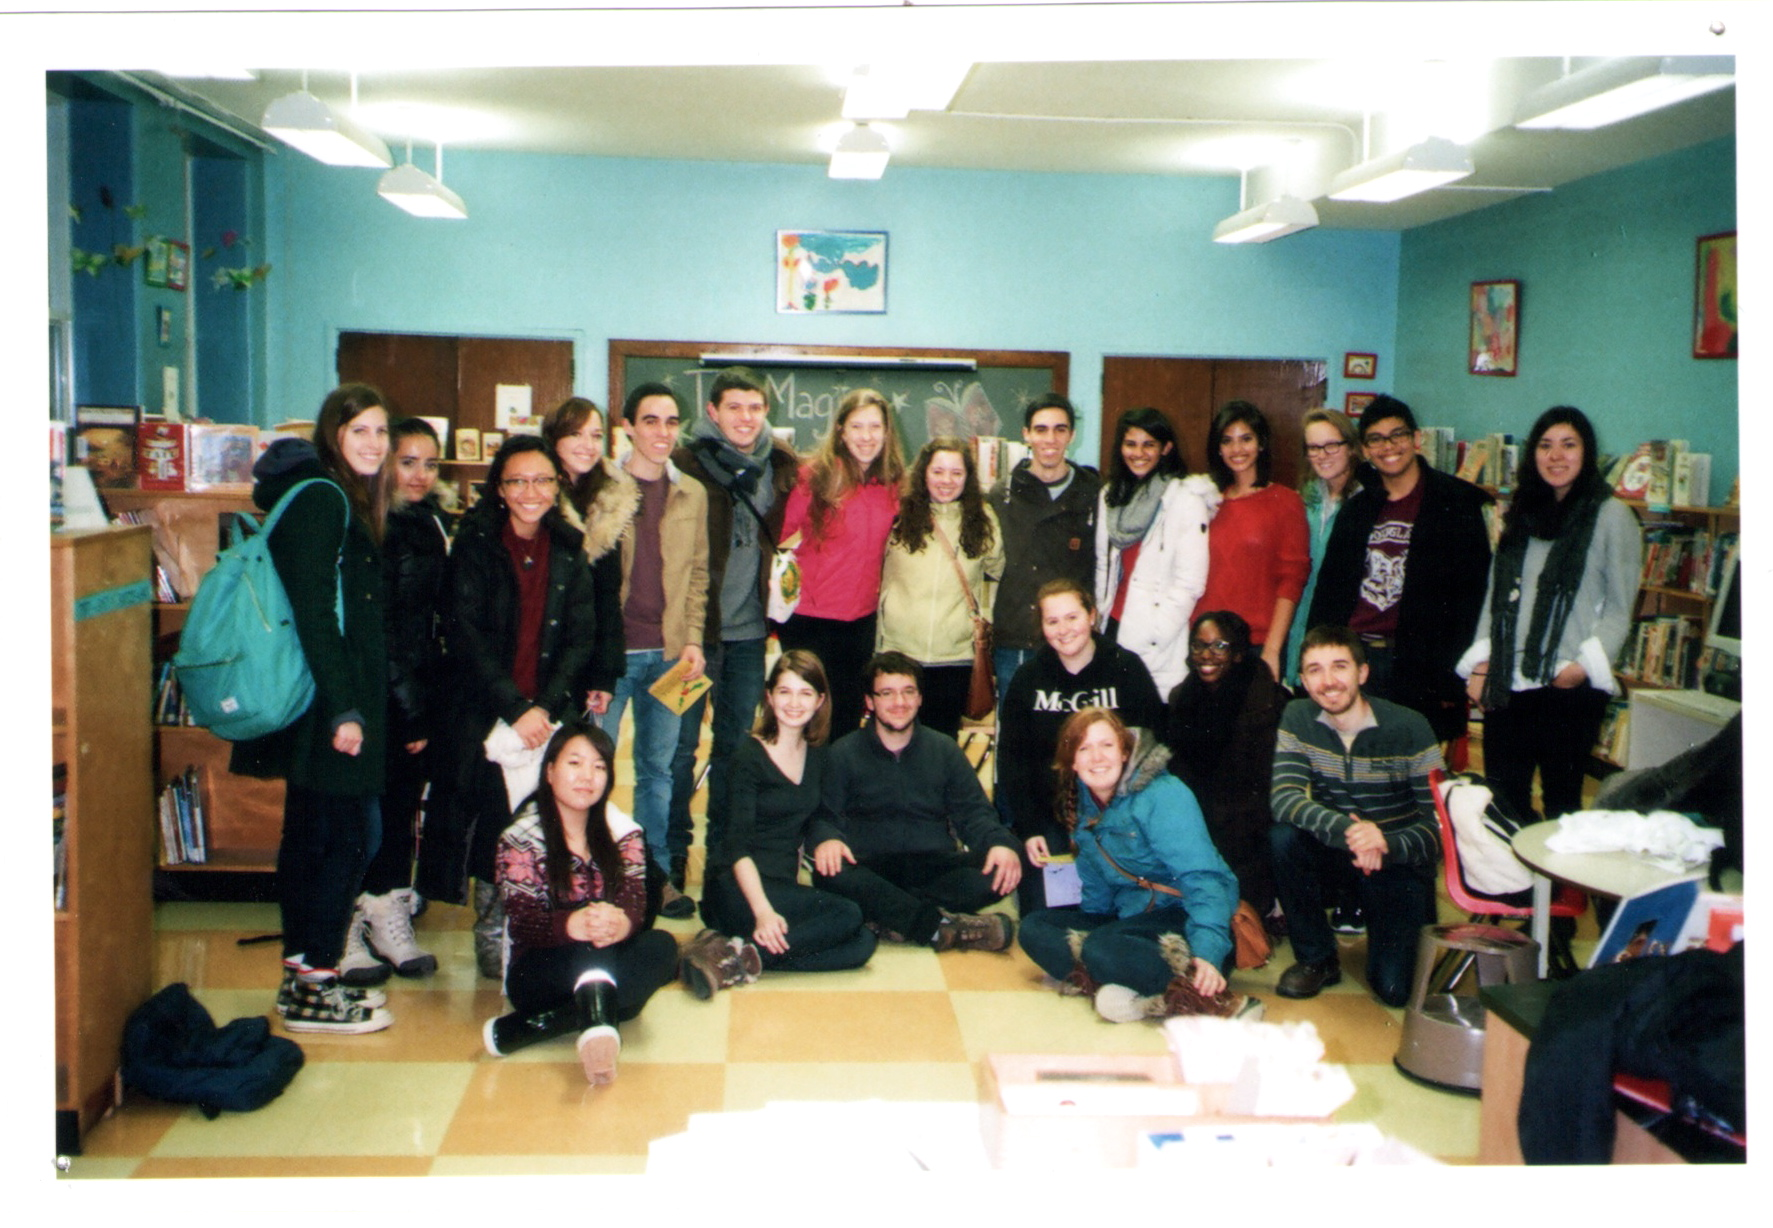 Last day at Verdun – Fall 2013 group shot!